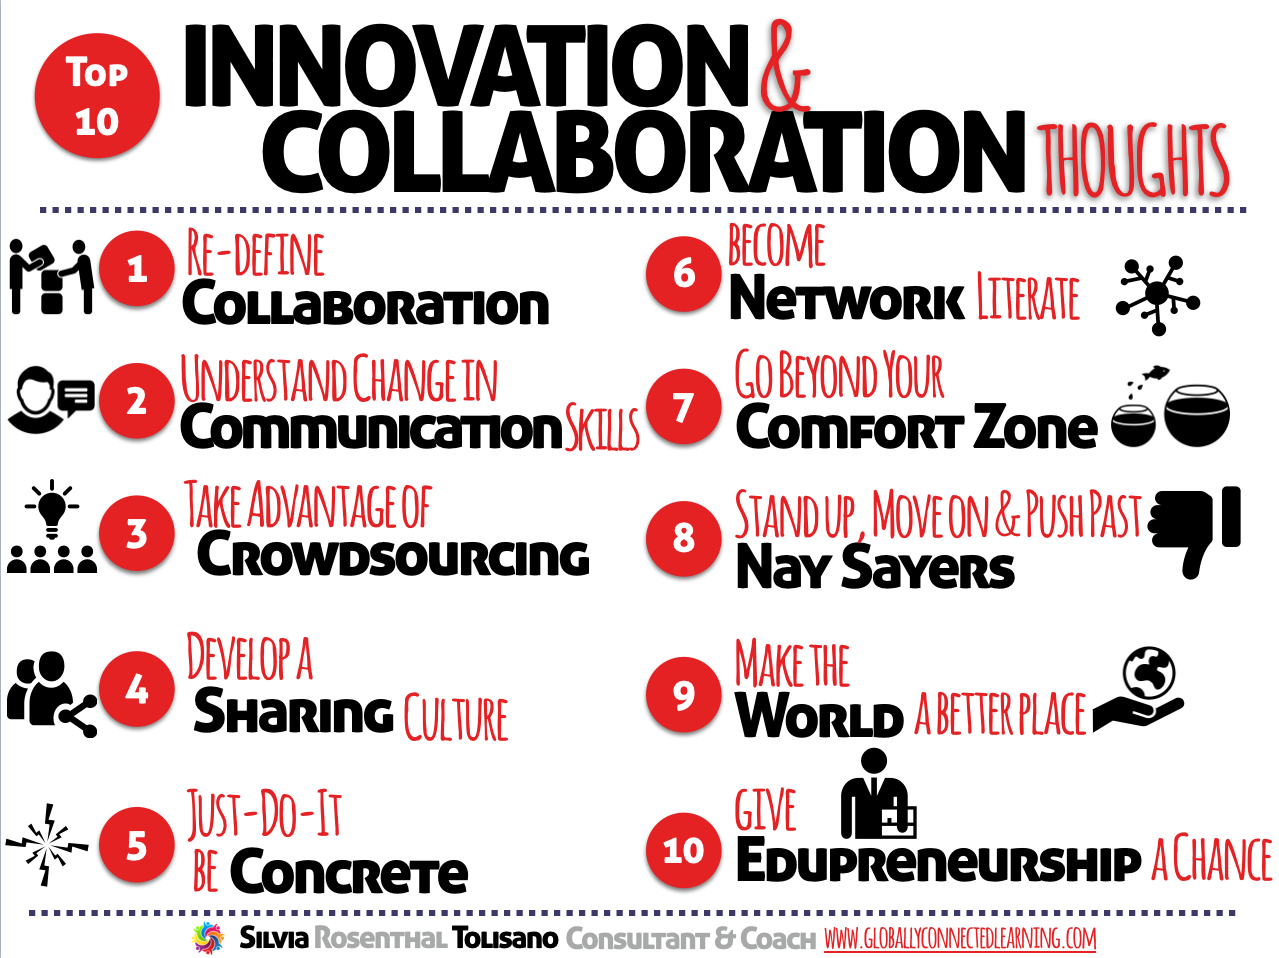 Collaborative Teaching Define ~ Top innovation collaboration thoughts silvia